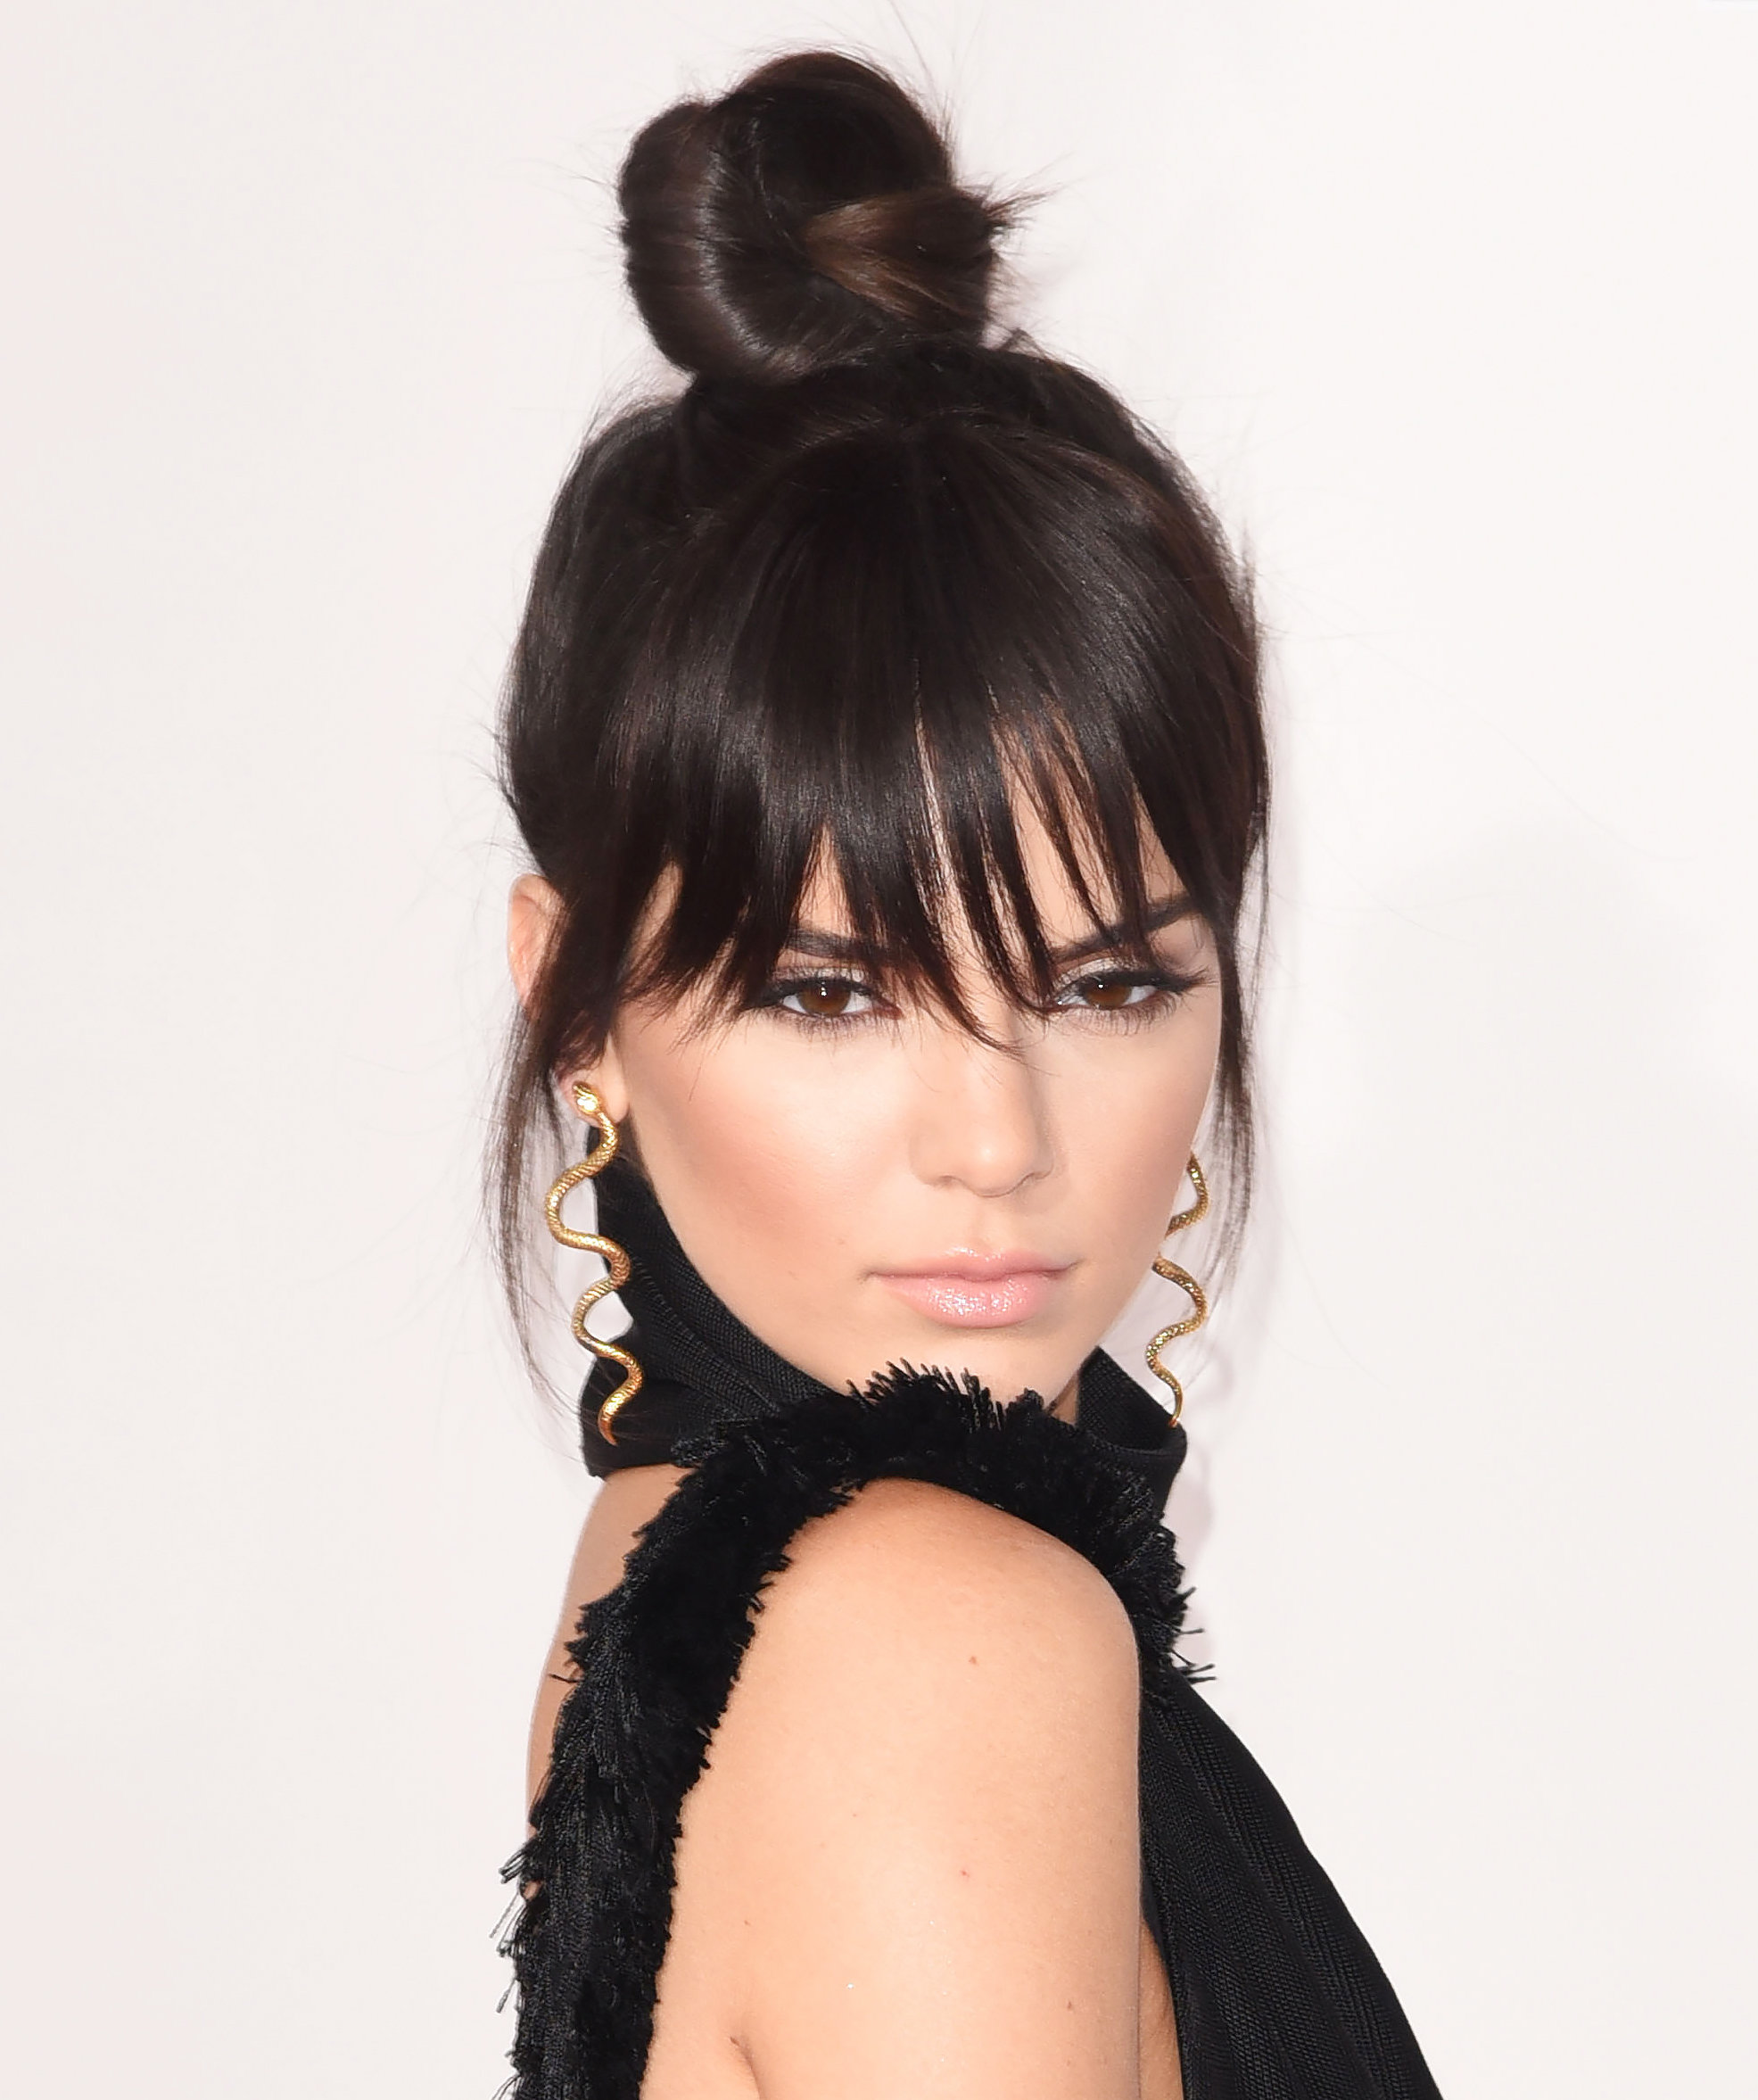 Kendall Jenner - 2015 American Music Awards - November 22, 2015